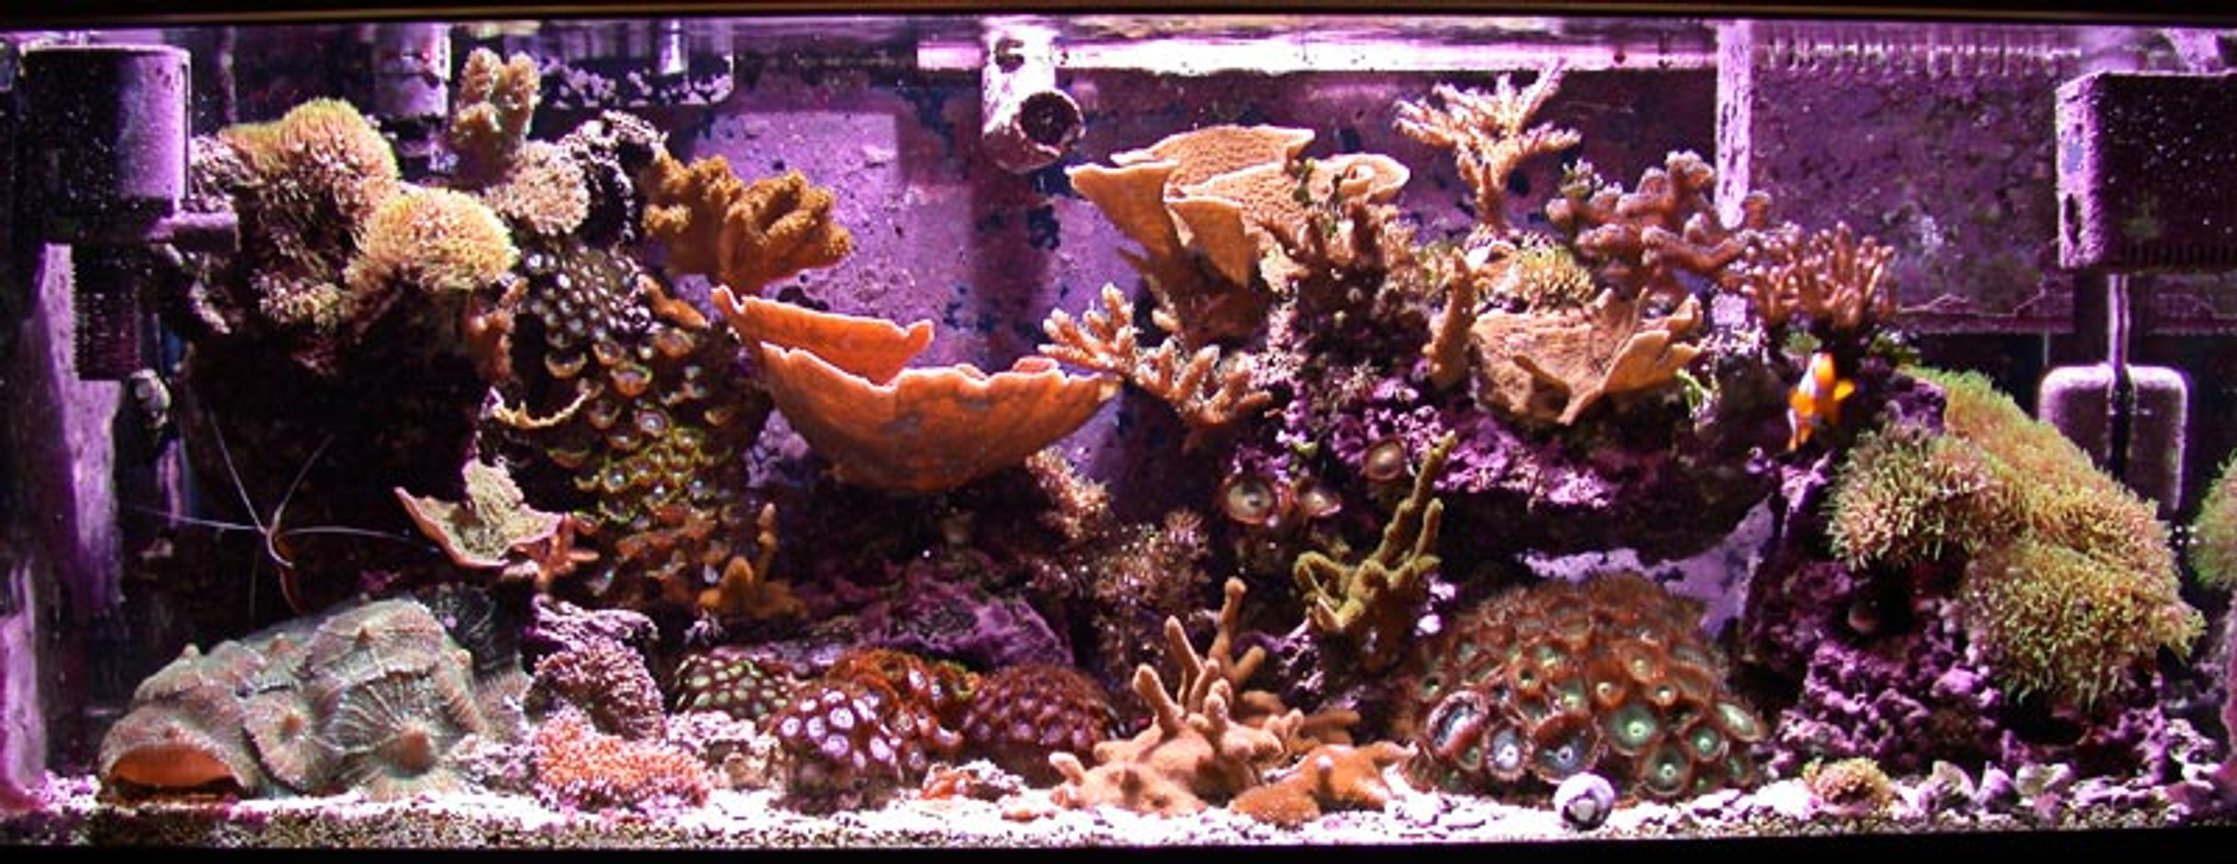 reef tank (mostly live coral and fish) - 20g SPS Nano Reef